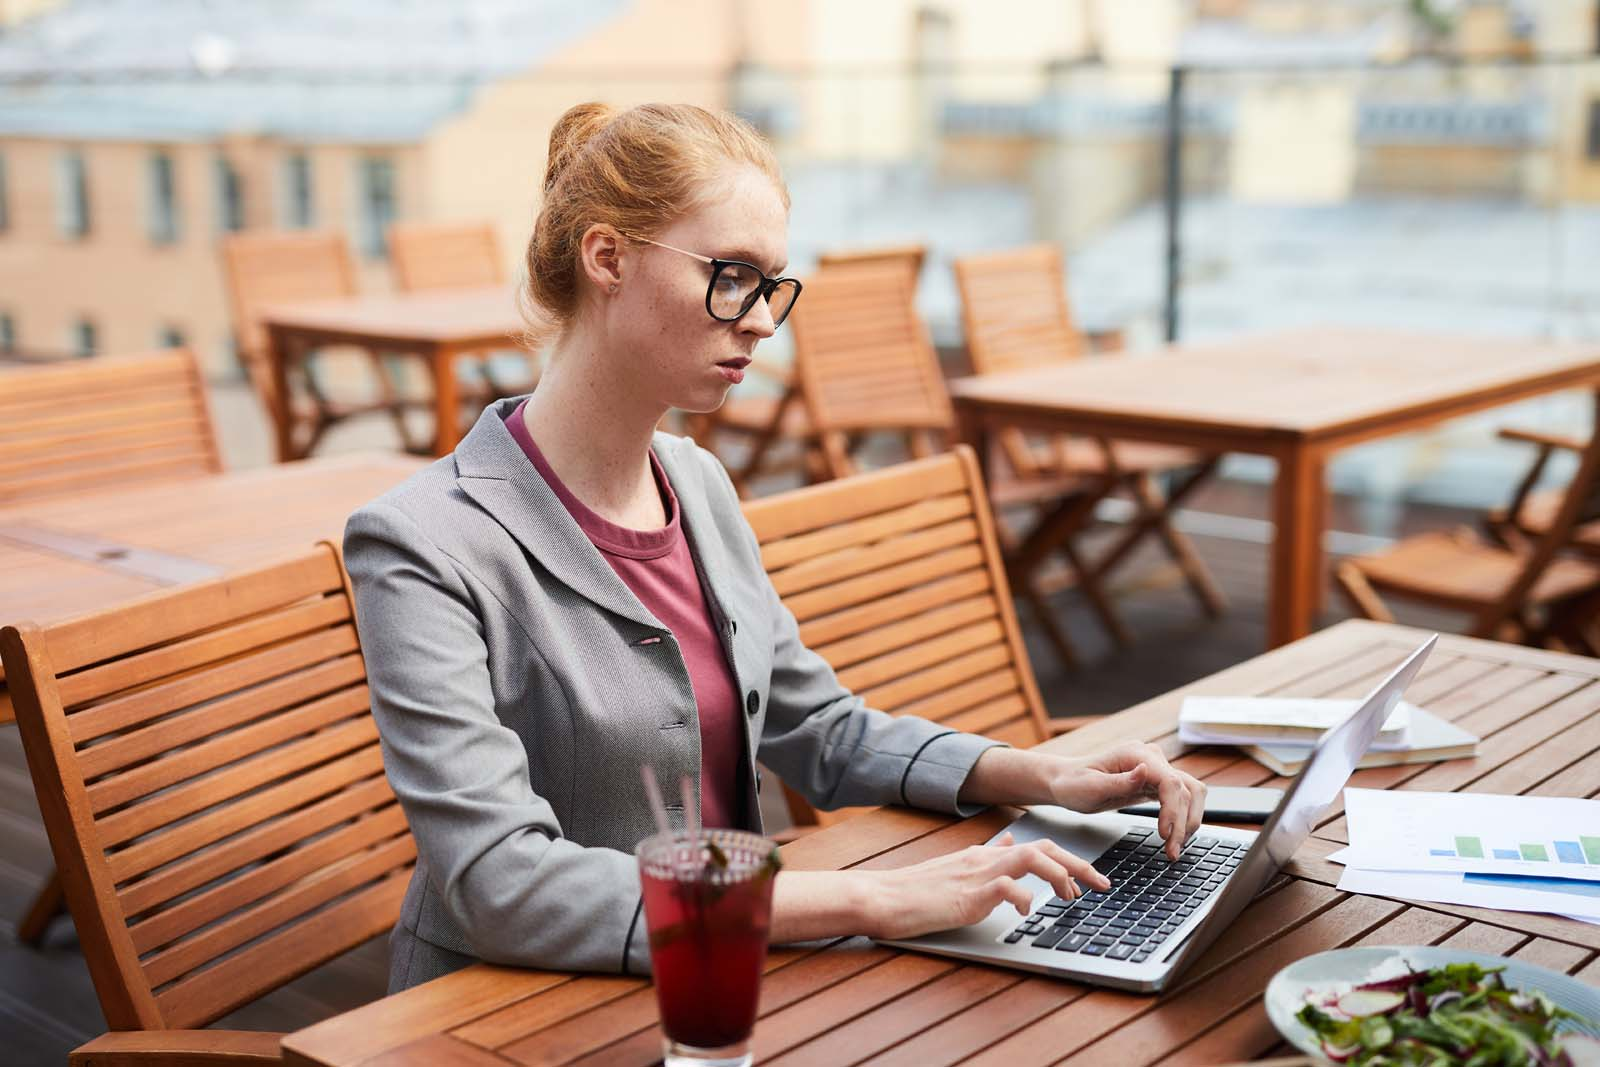 professional looking freelance woman working at coffee shop